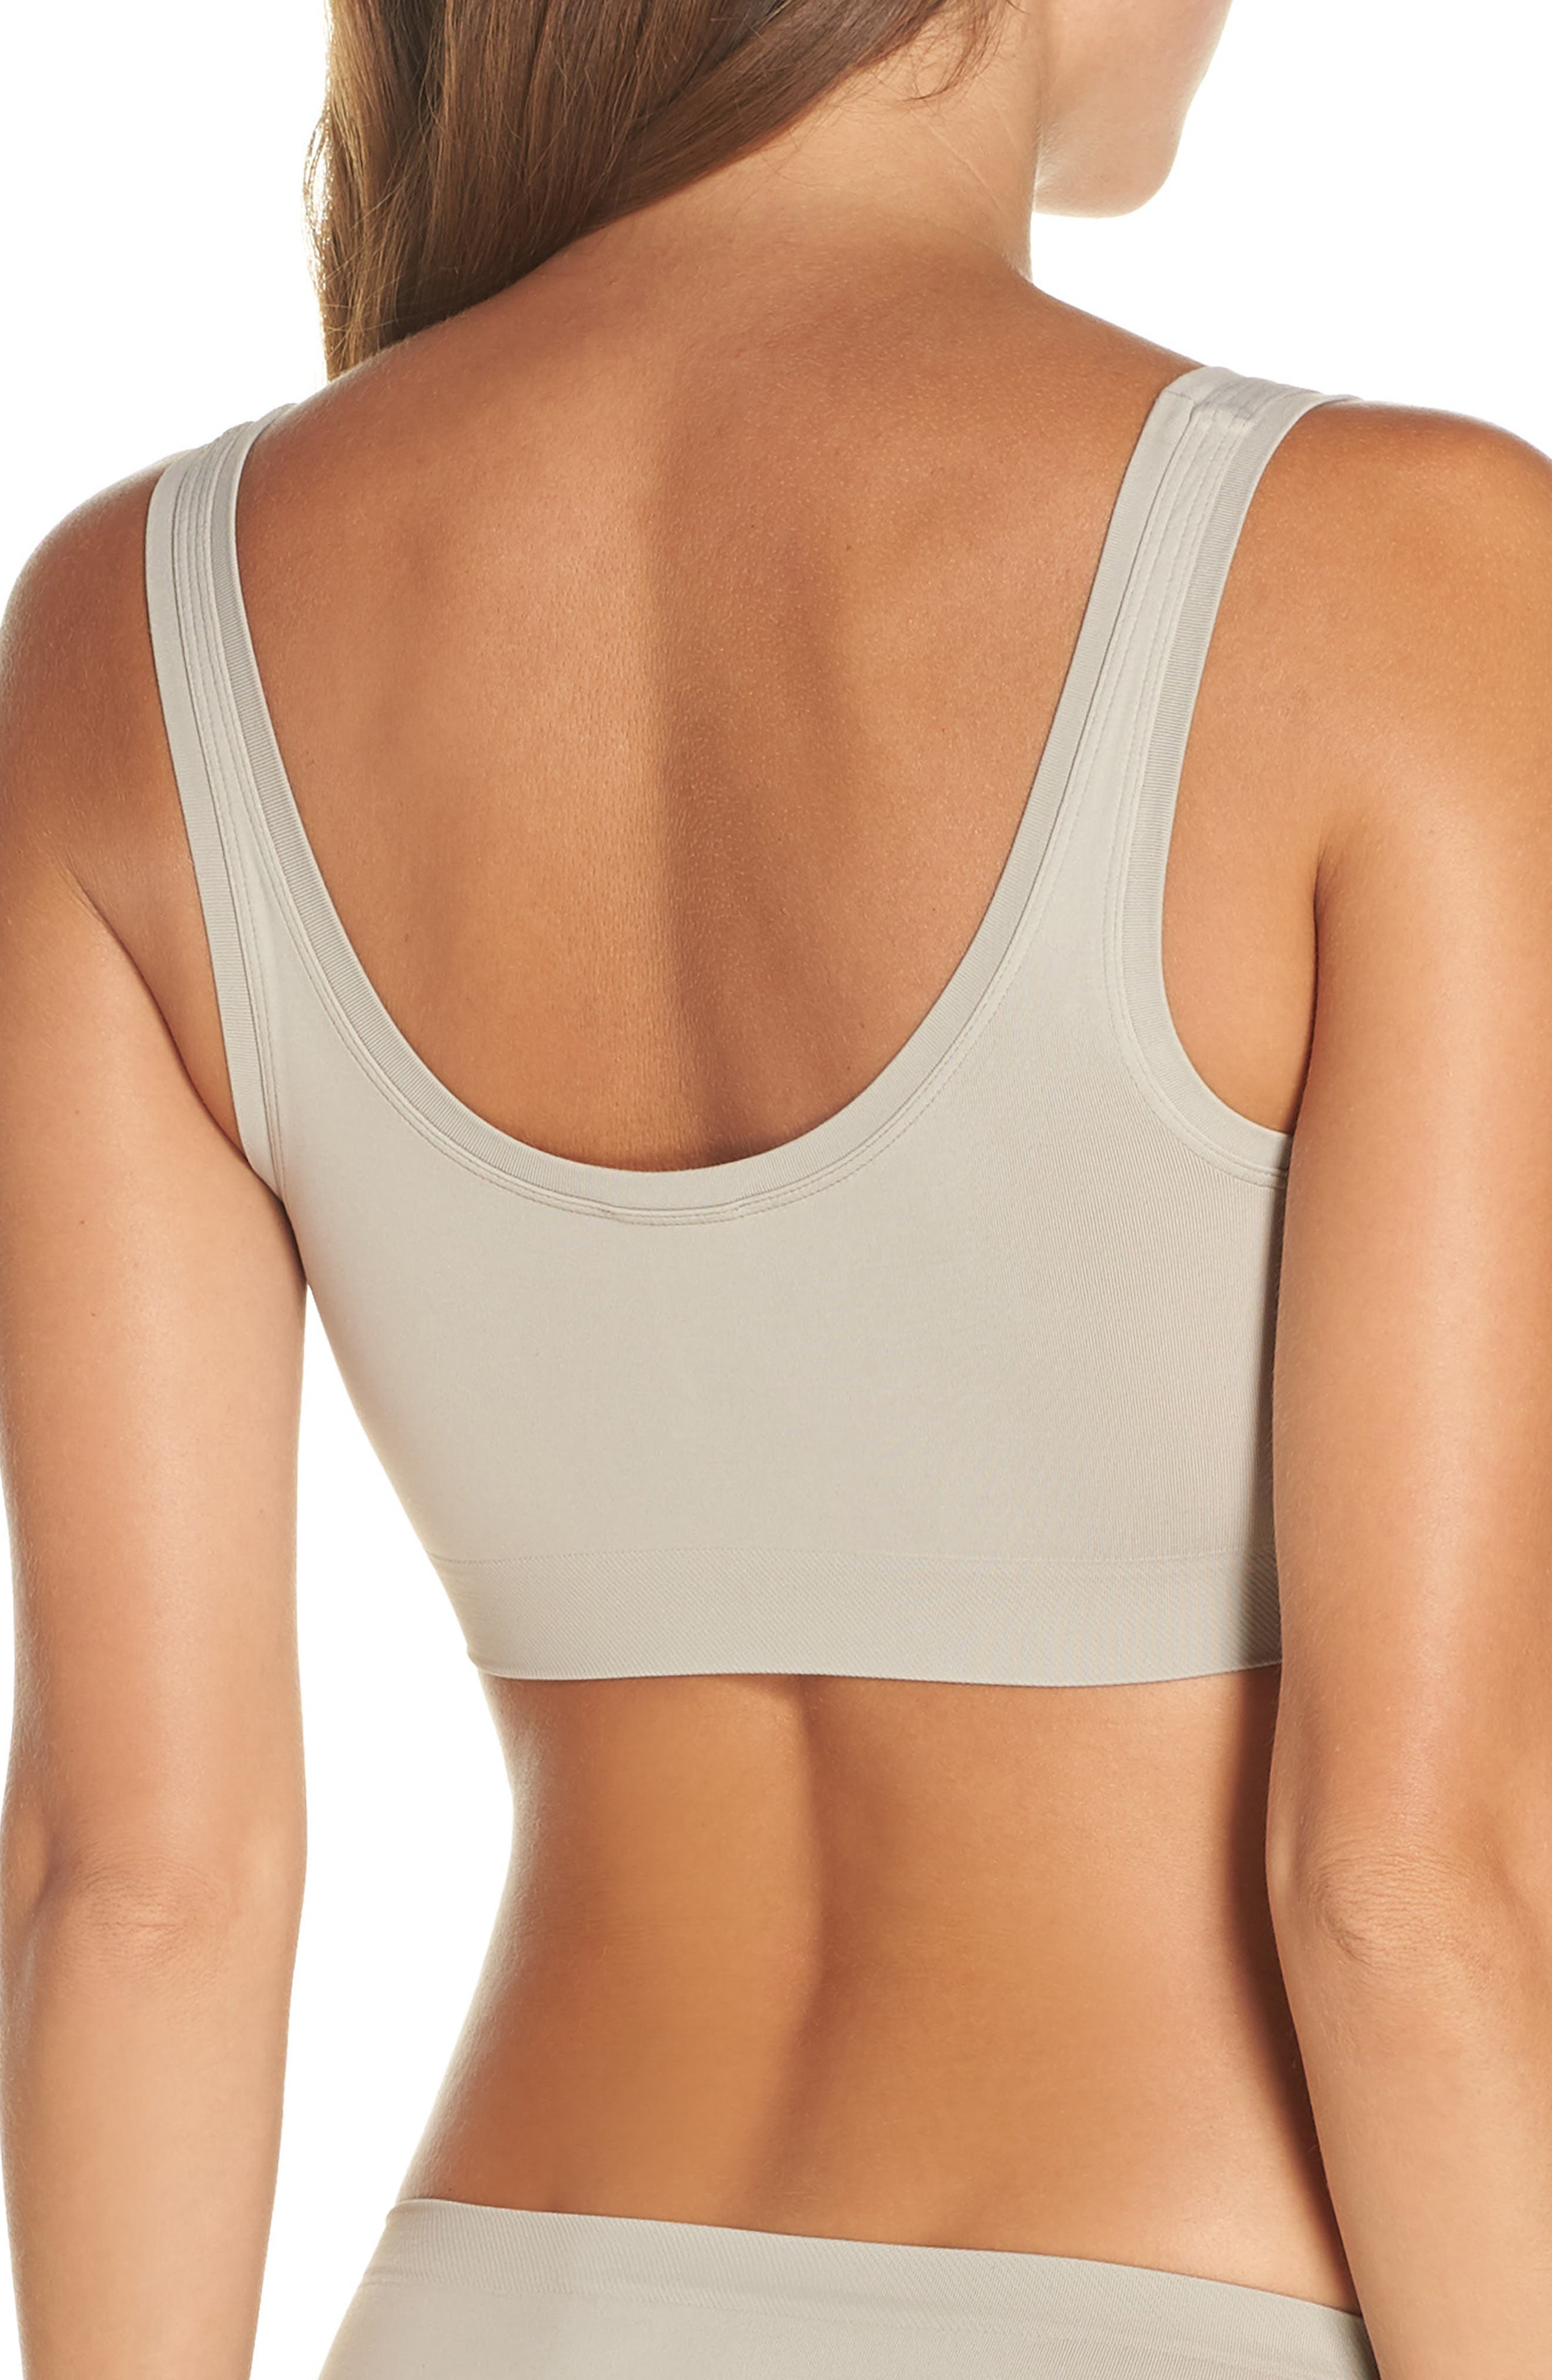 'Touch Feeling' Crop Top,                             Alternate thumbnail 10, color,